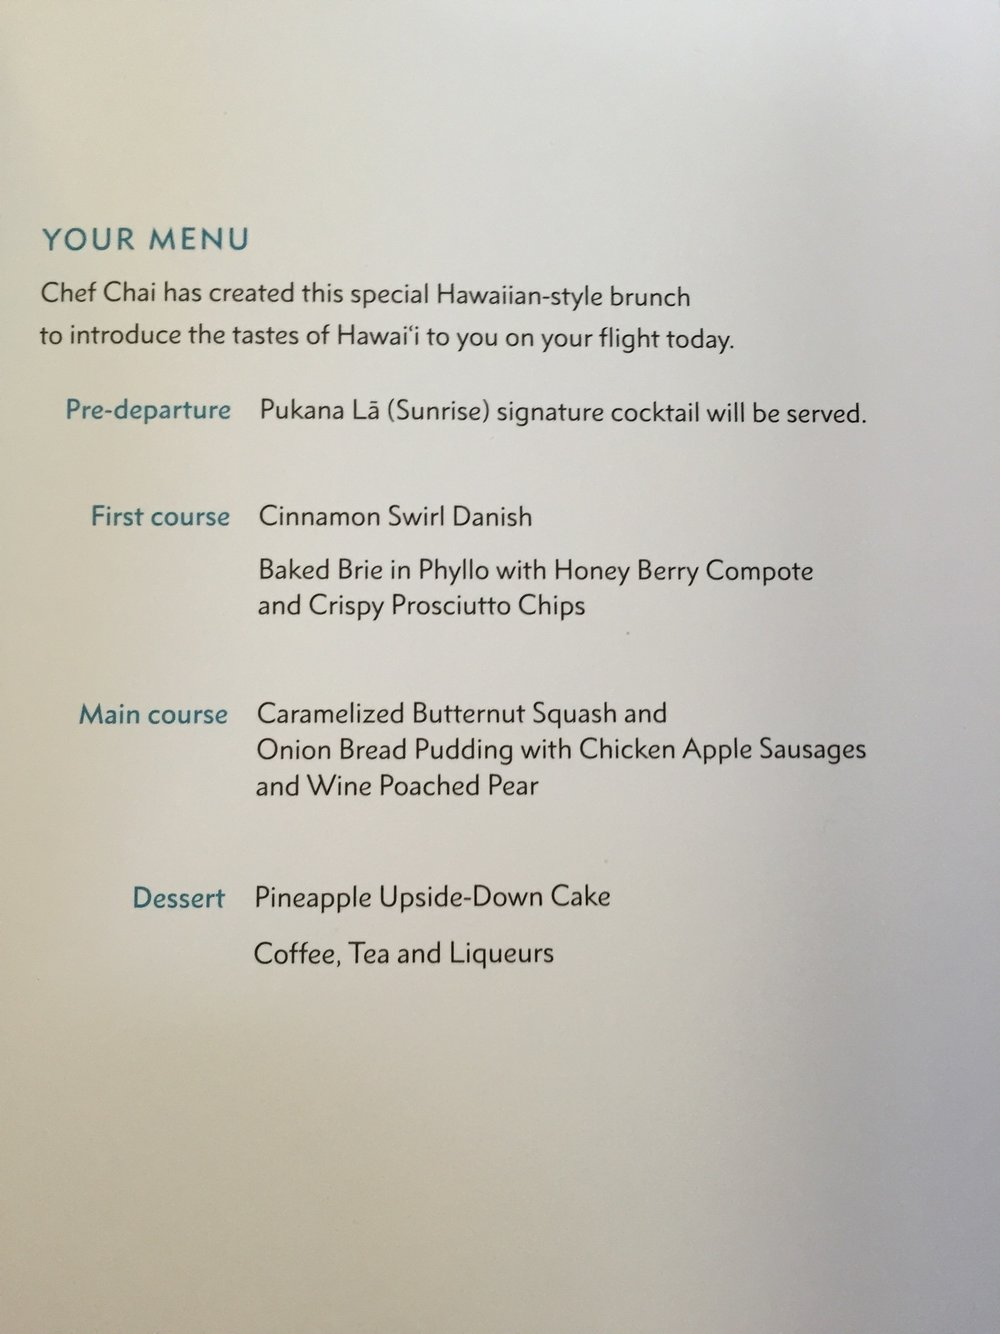 Hawaiian Airlines first class bunch menu on June 5, 2016 from Sacramento to Honolulu